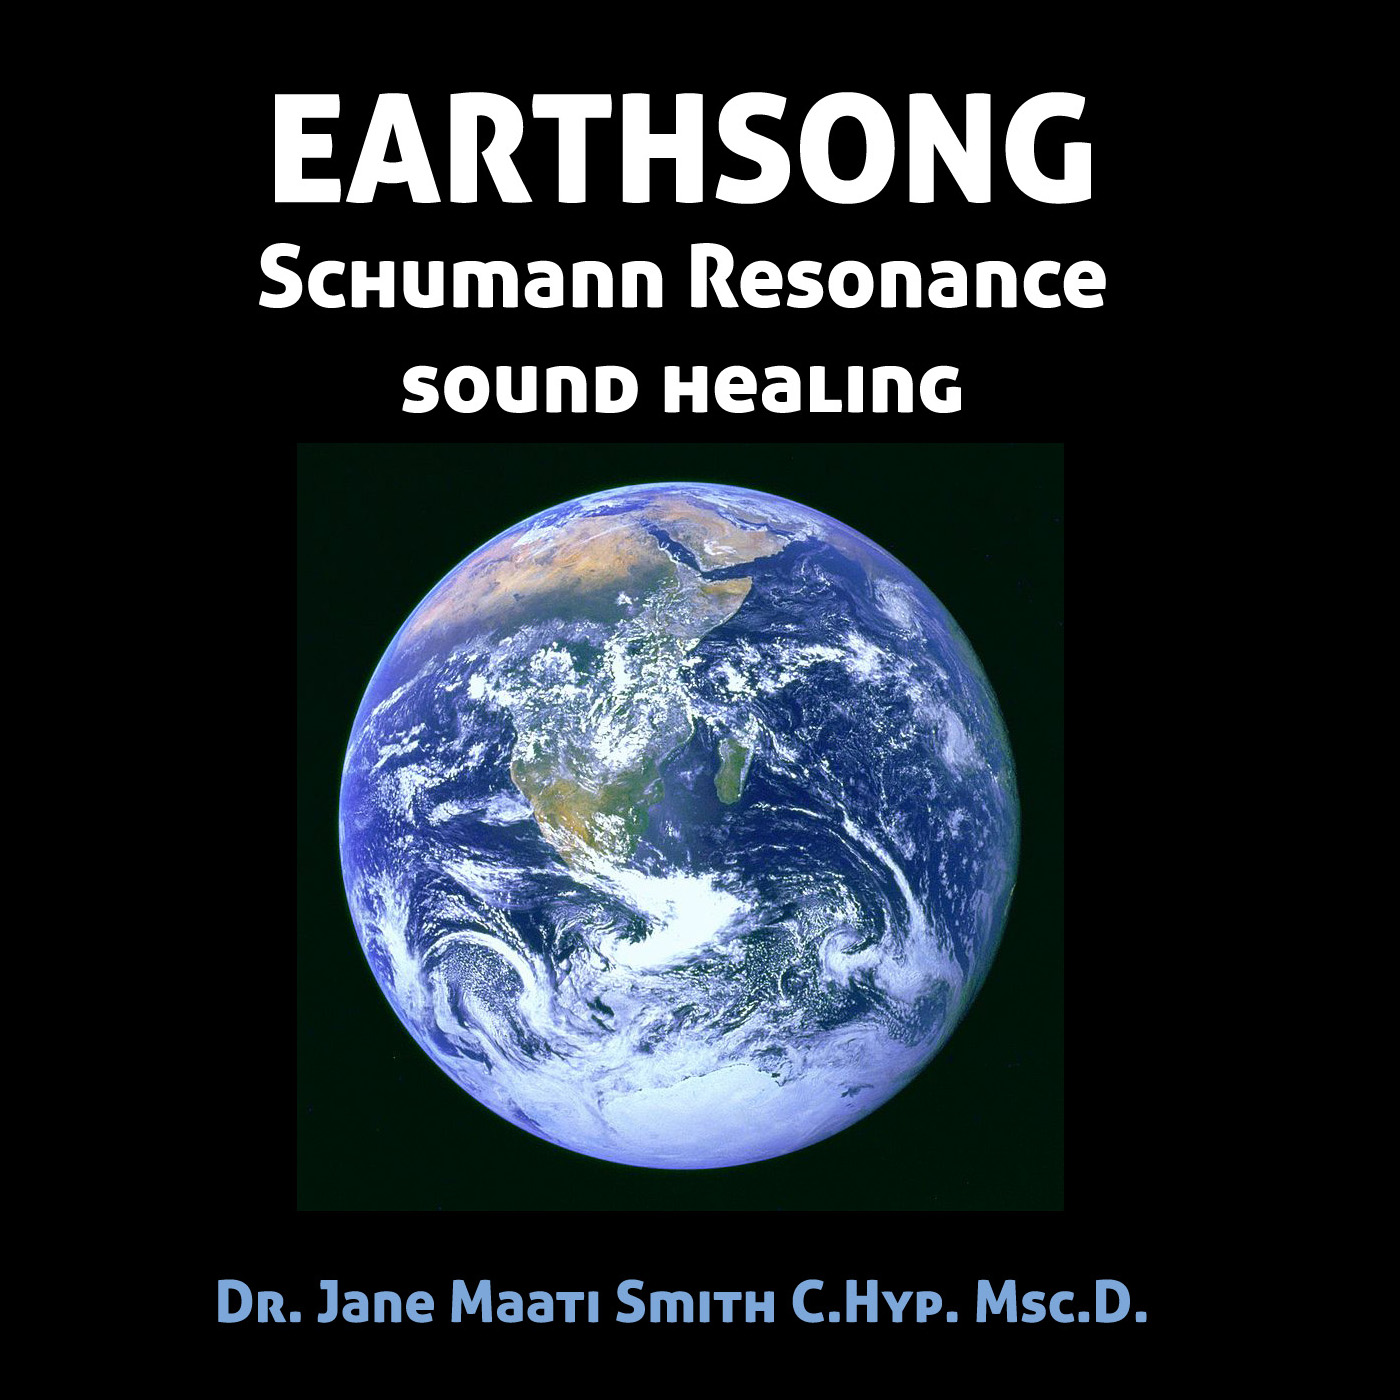 schumann resonance isochronic tones